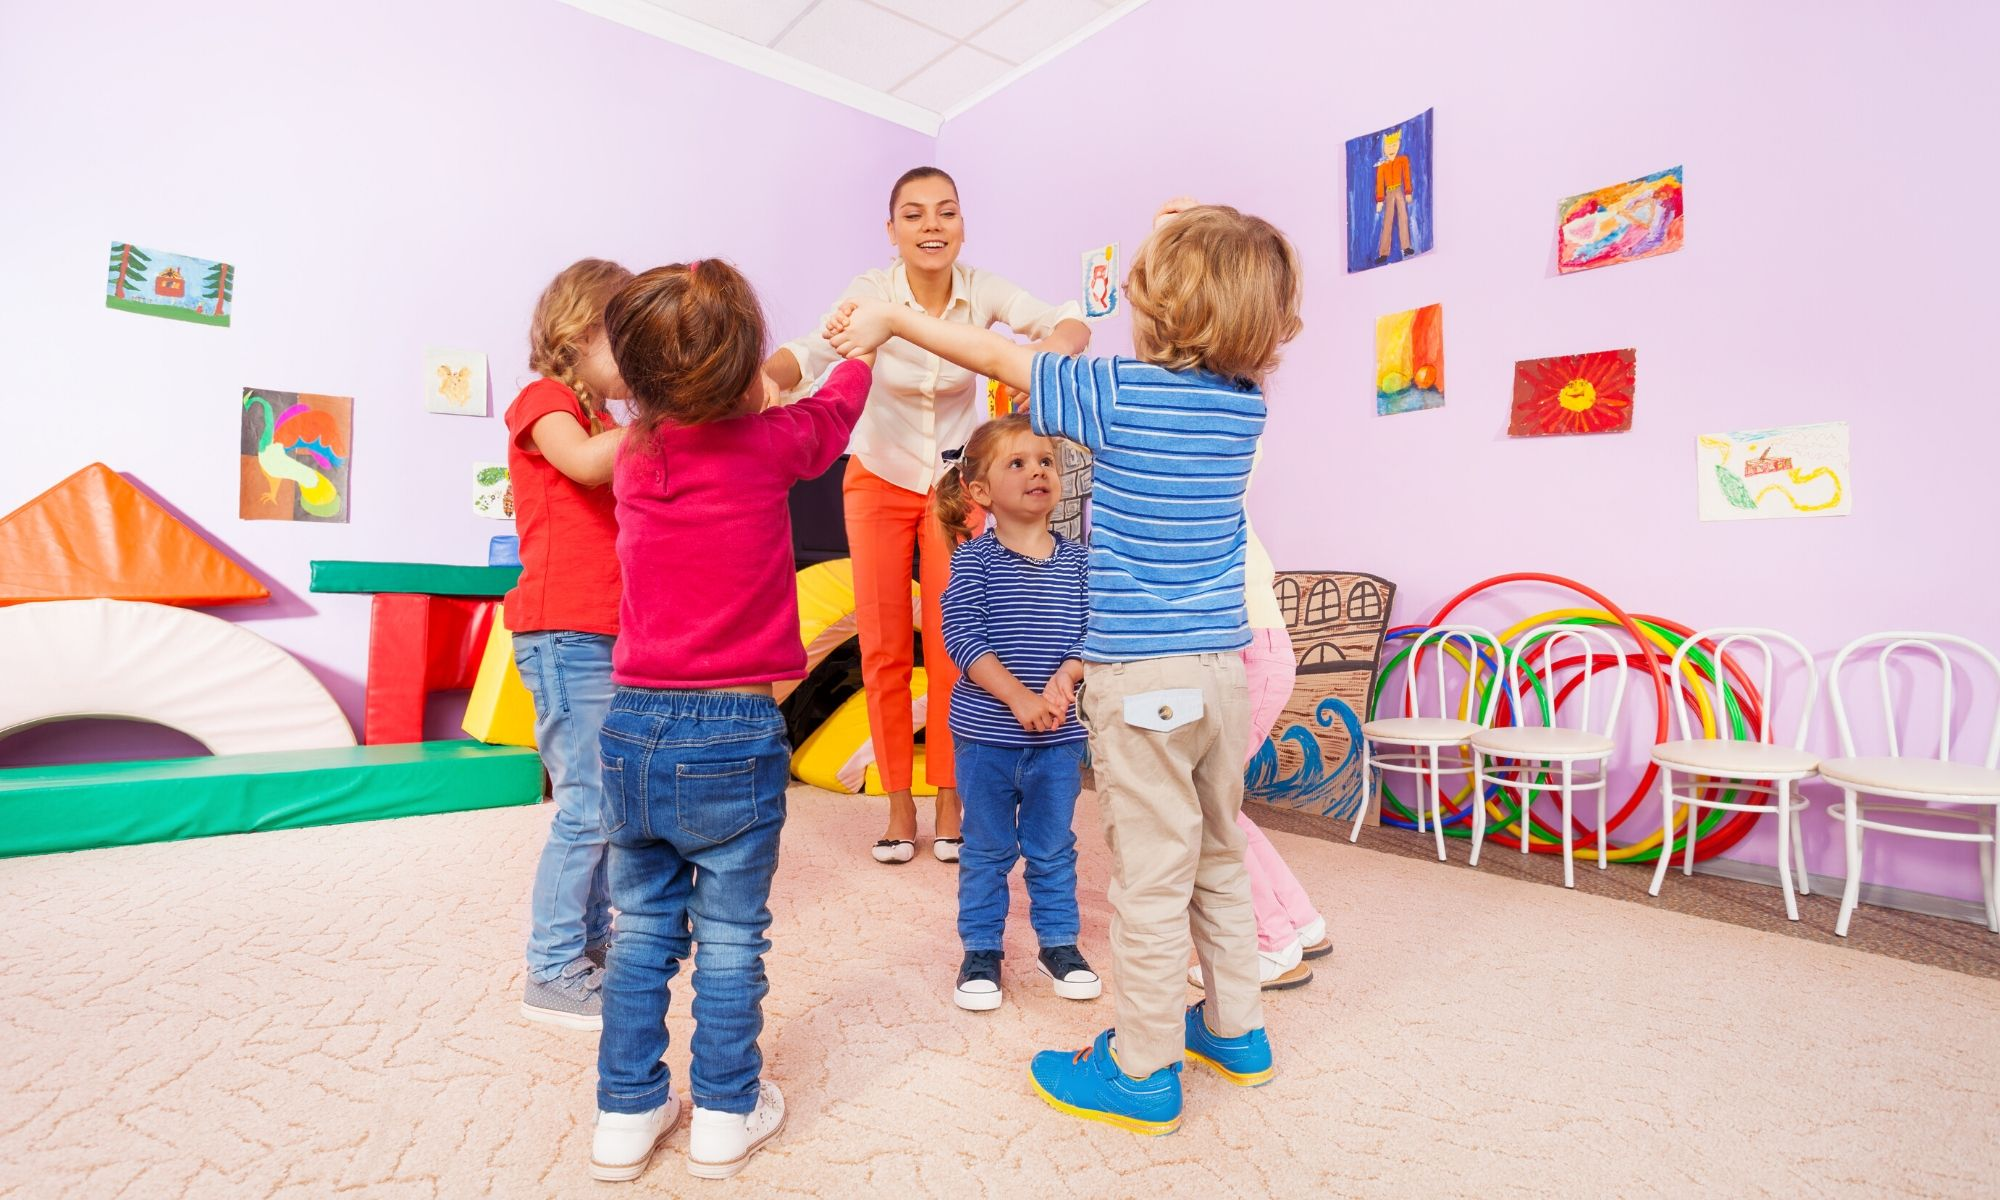 Toddlers back at their nursery playing with their friends and teacher